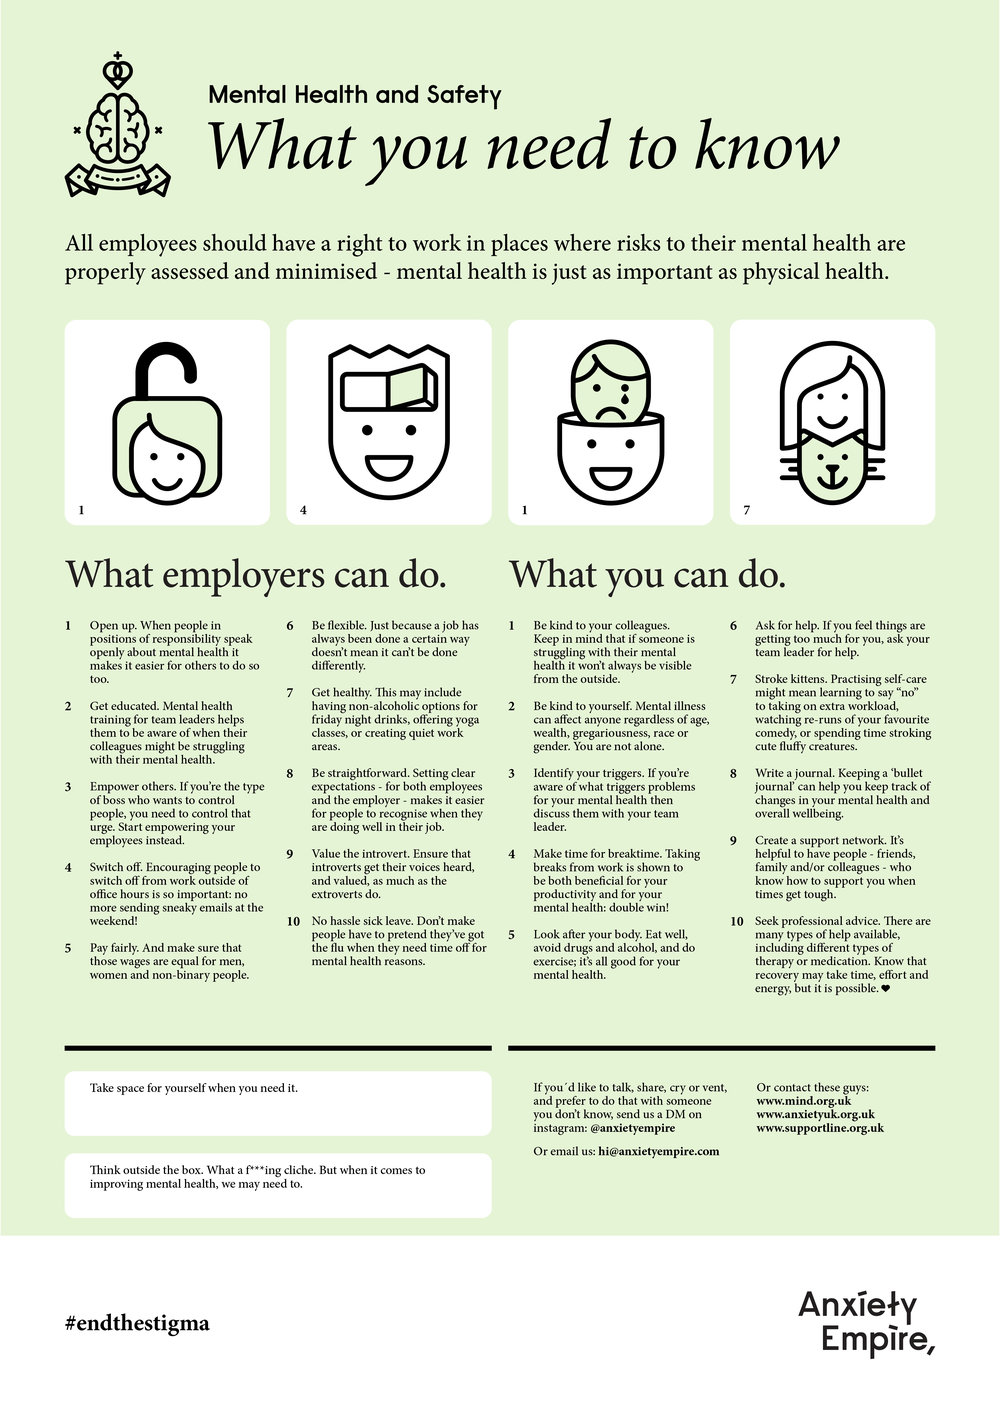 The Mental Health & Safety Poster